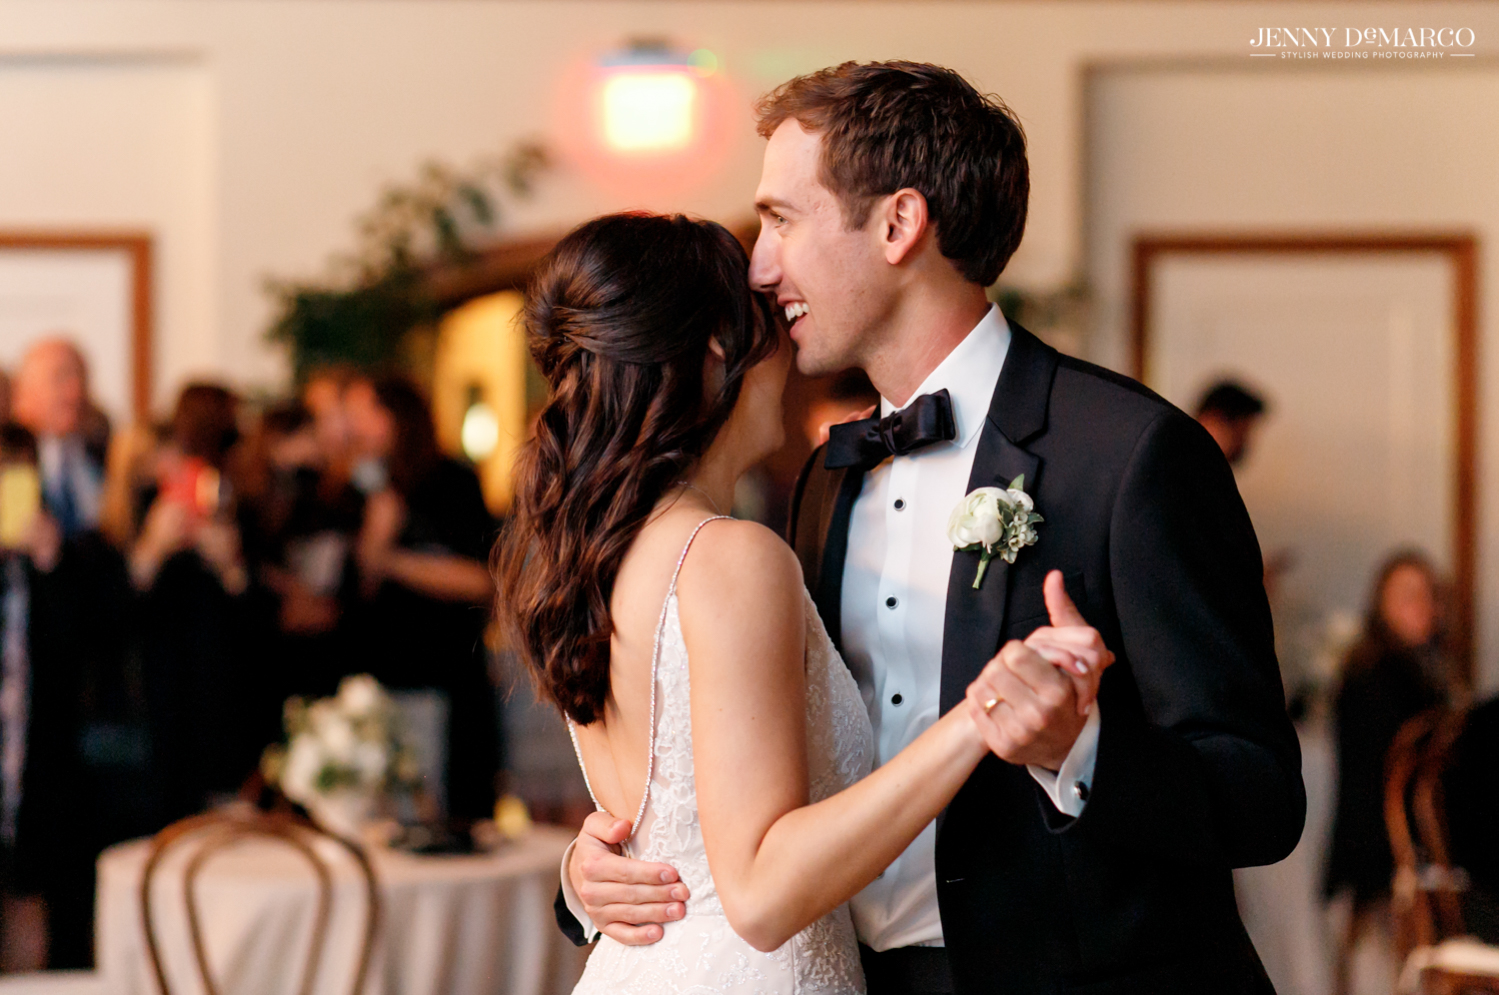 bride and groom's first dance together